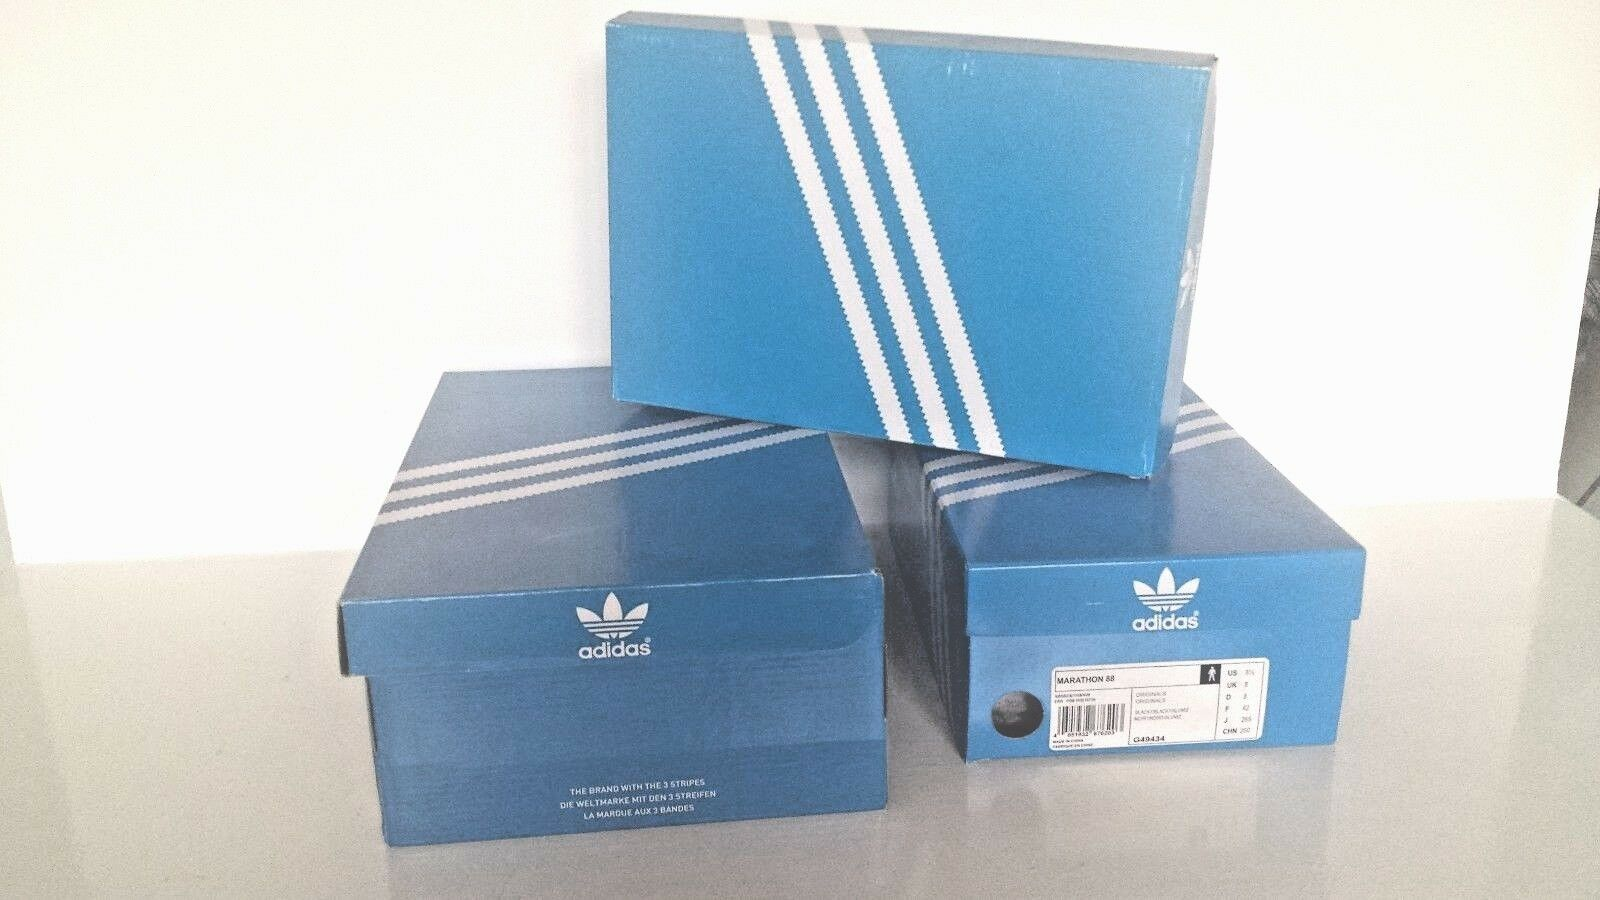 8 empty used ADIDAS trainers boxes EQT SUPORT CUSHION GUIDANCE RACING OG TR 8000 The most popular shoes for men and women